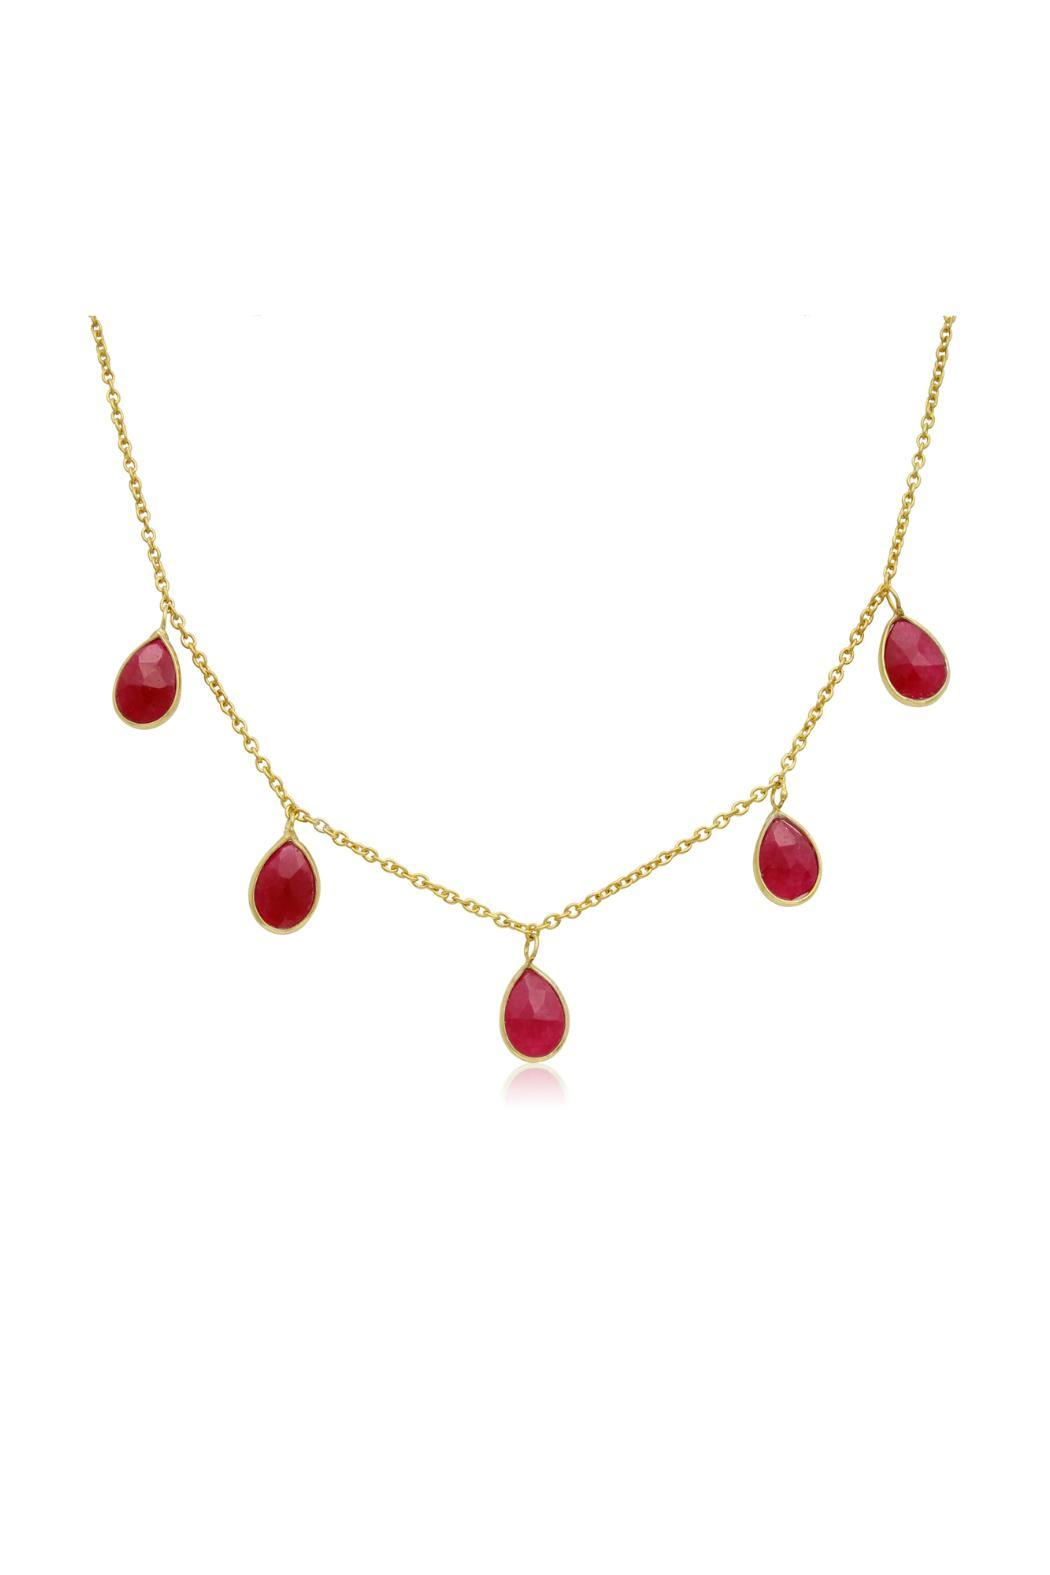 pnd real yellow ruby chain diamond gold necklace red pendant charm royal set